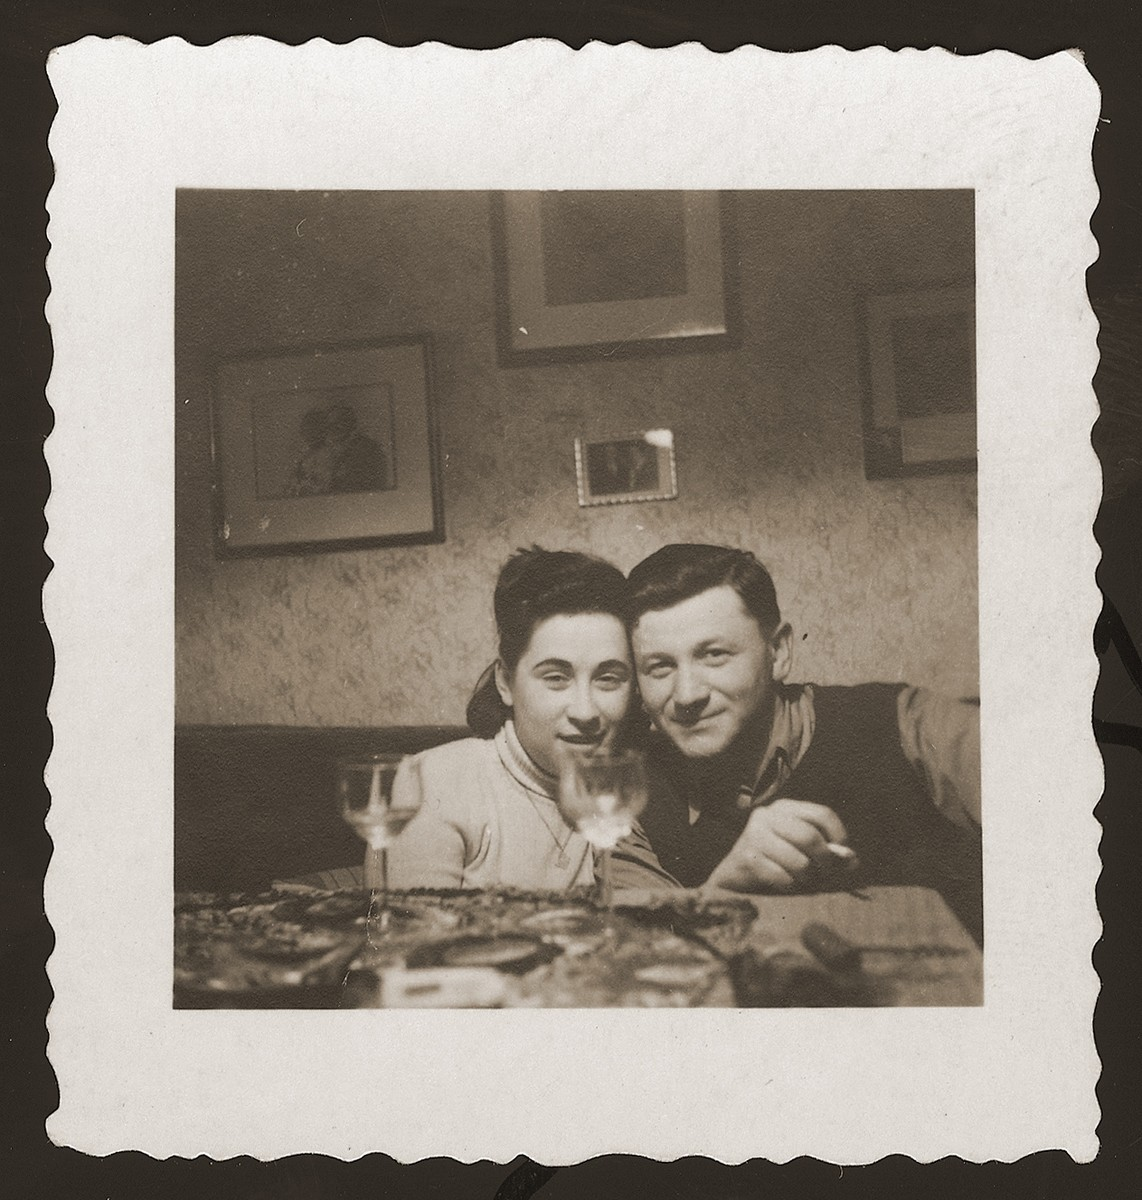 Two Jewish DP siblings, who have been recently reunited, pose in an apartment in the New Palestine displaced persons camp near Salzburg.  Pictured are Zygmunt and Genia Litwak from Dabrowa Gornicza, Poland.